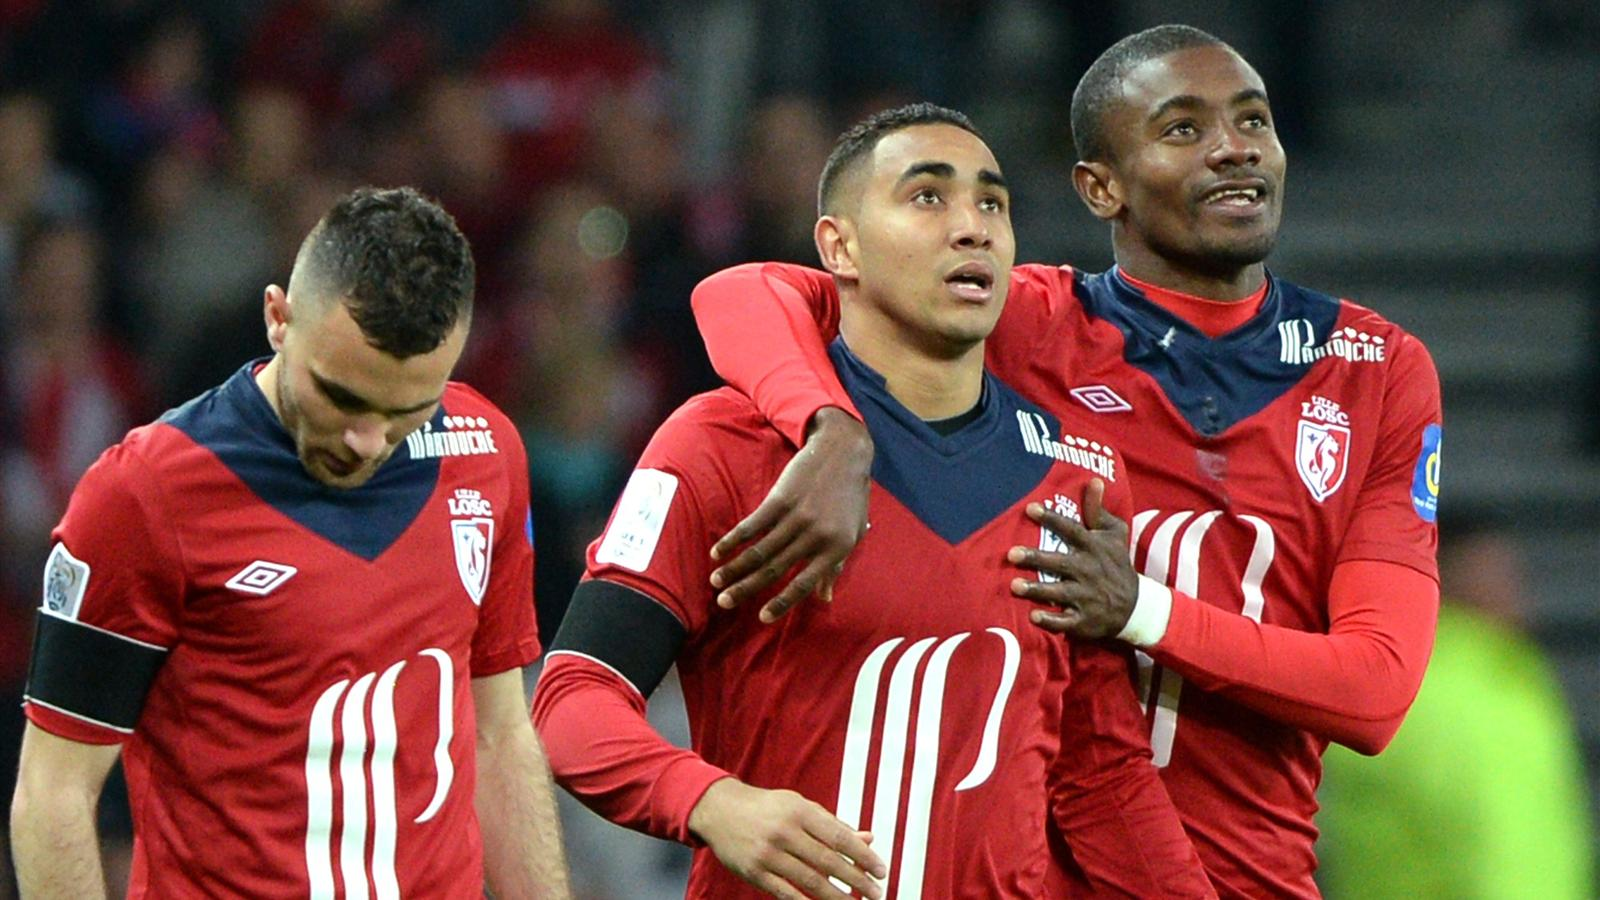 Match Stade de Reims vs Lille en direct live streaming